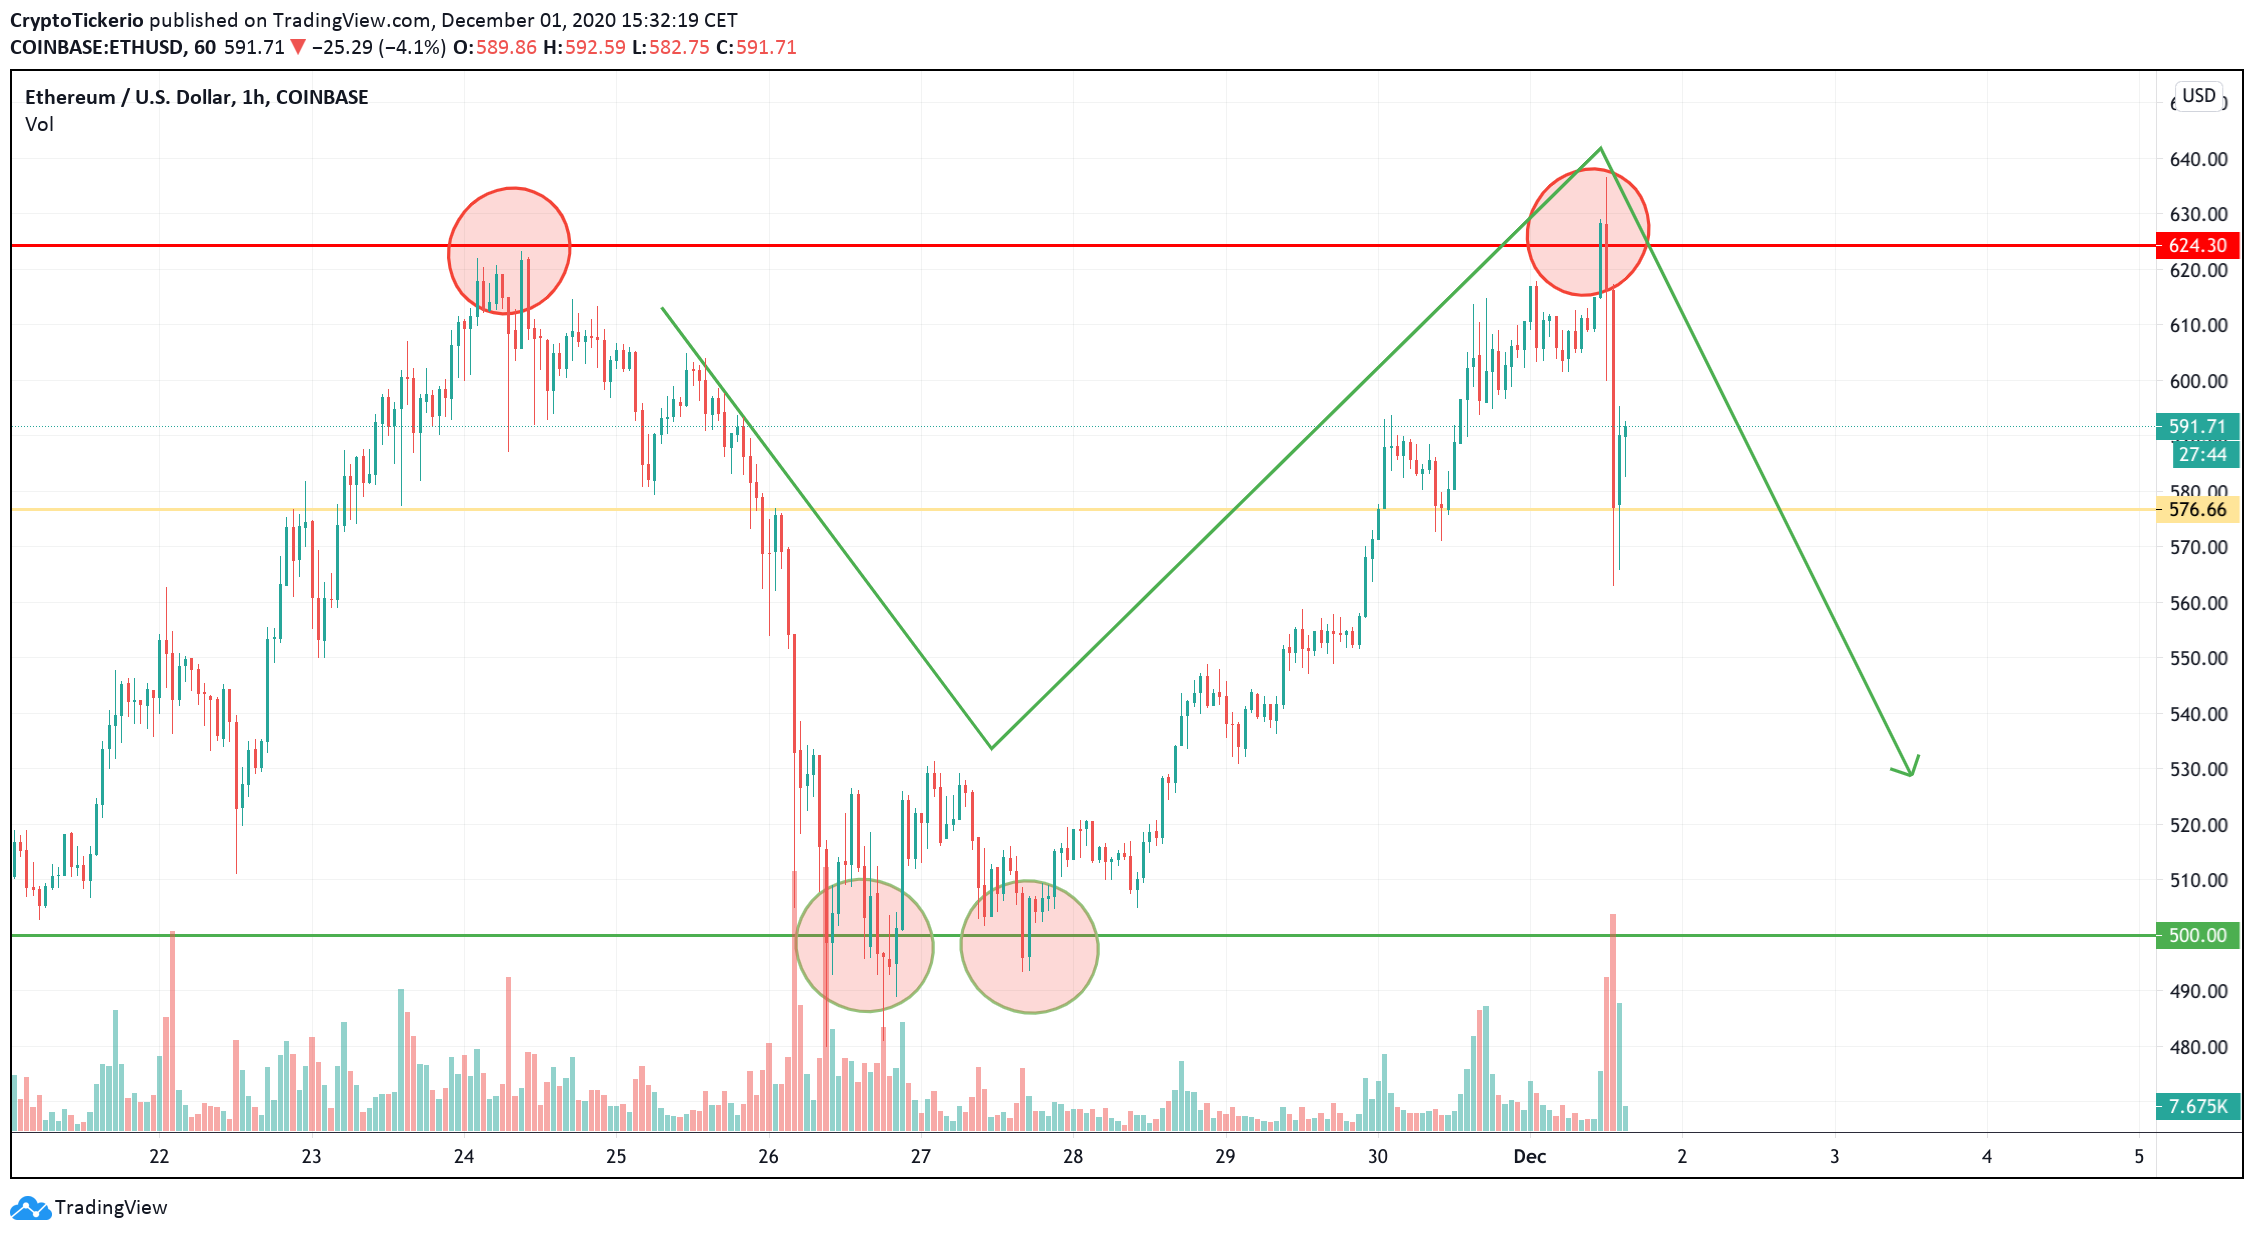 ETH/USD 1-Hour chart, showing the formation of a double top